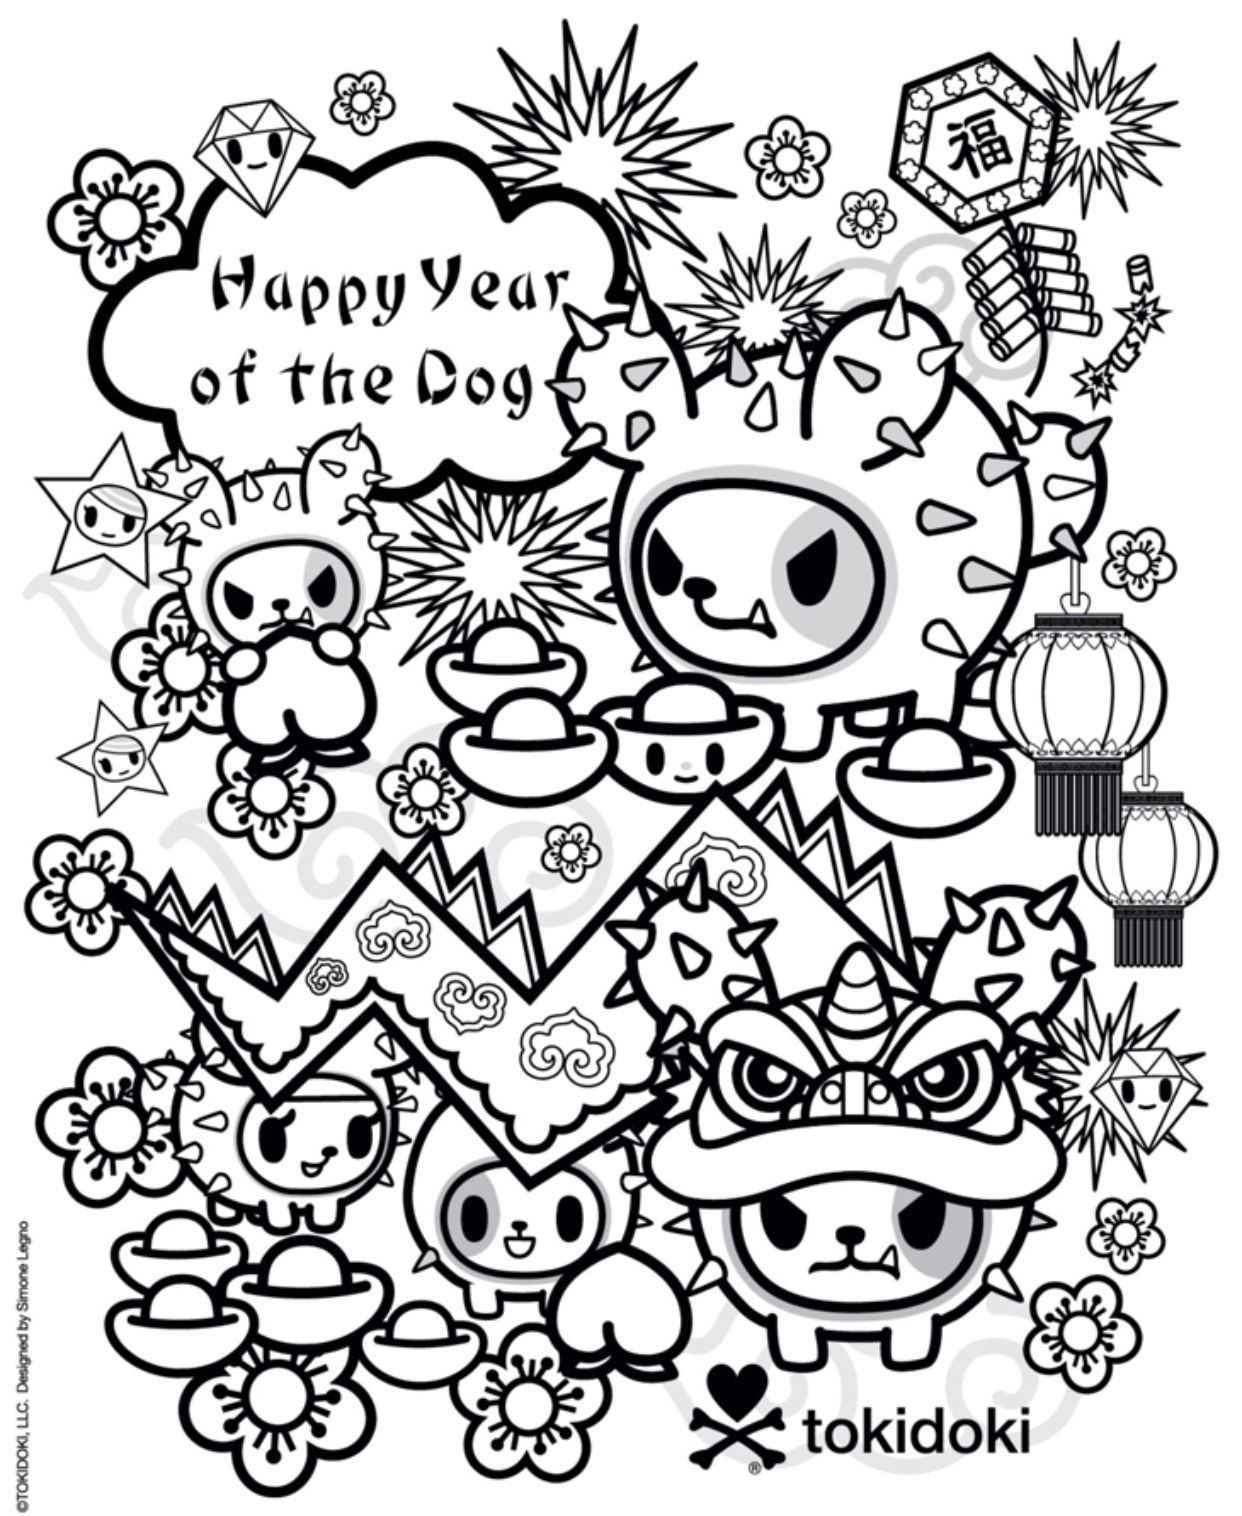 Tokidoki Yotd Colouring Page Cute Coloring Pages Cool Coloring Pages Tokidoki Characters